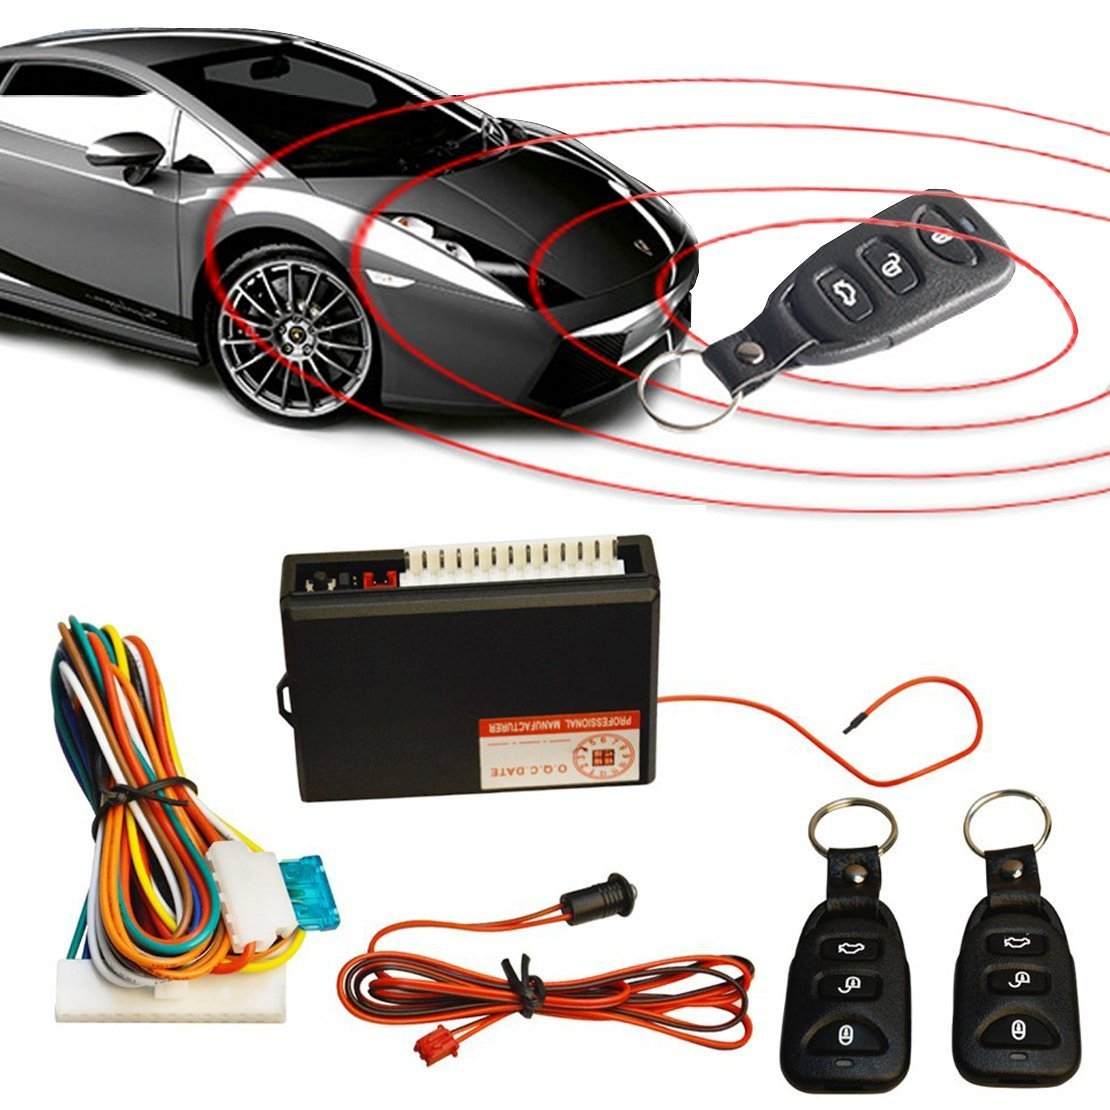 TESWNE Universal Car Door Lock Vehicle Keyless Entry System Auto Remote Central Kit with Control Box 8523722207